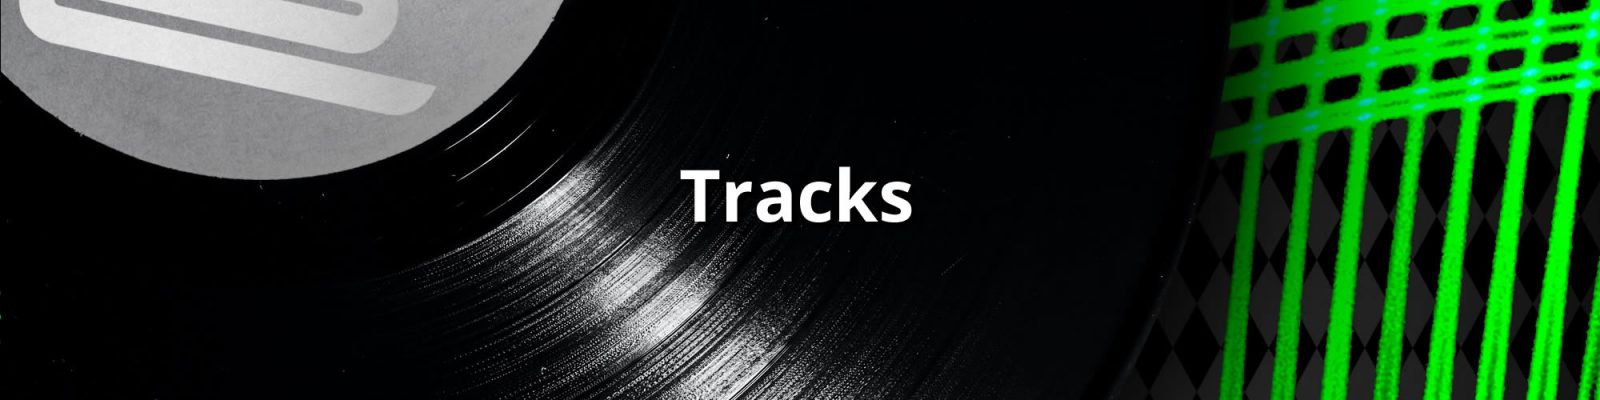 Drum & Bass Tracks by Mr Nitro